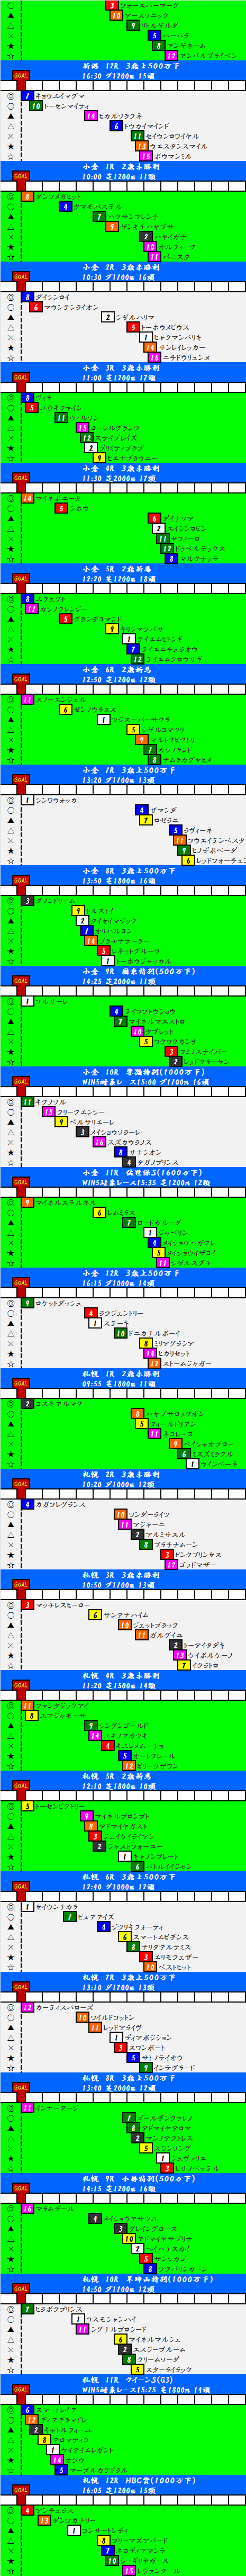 201408032.png